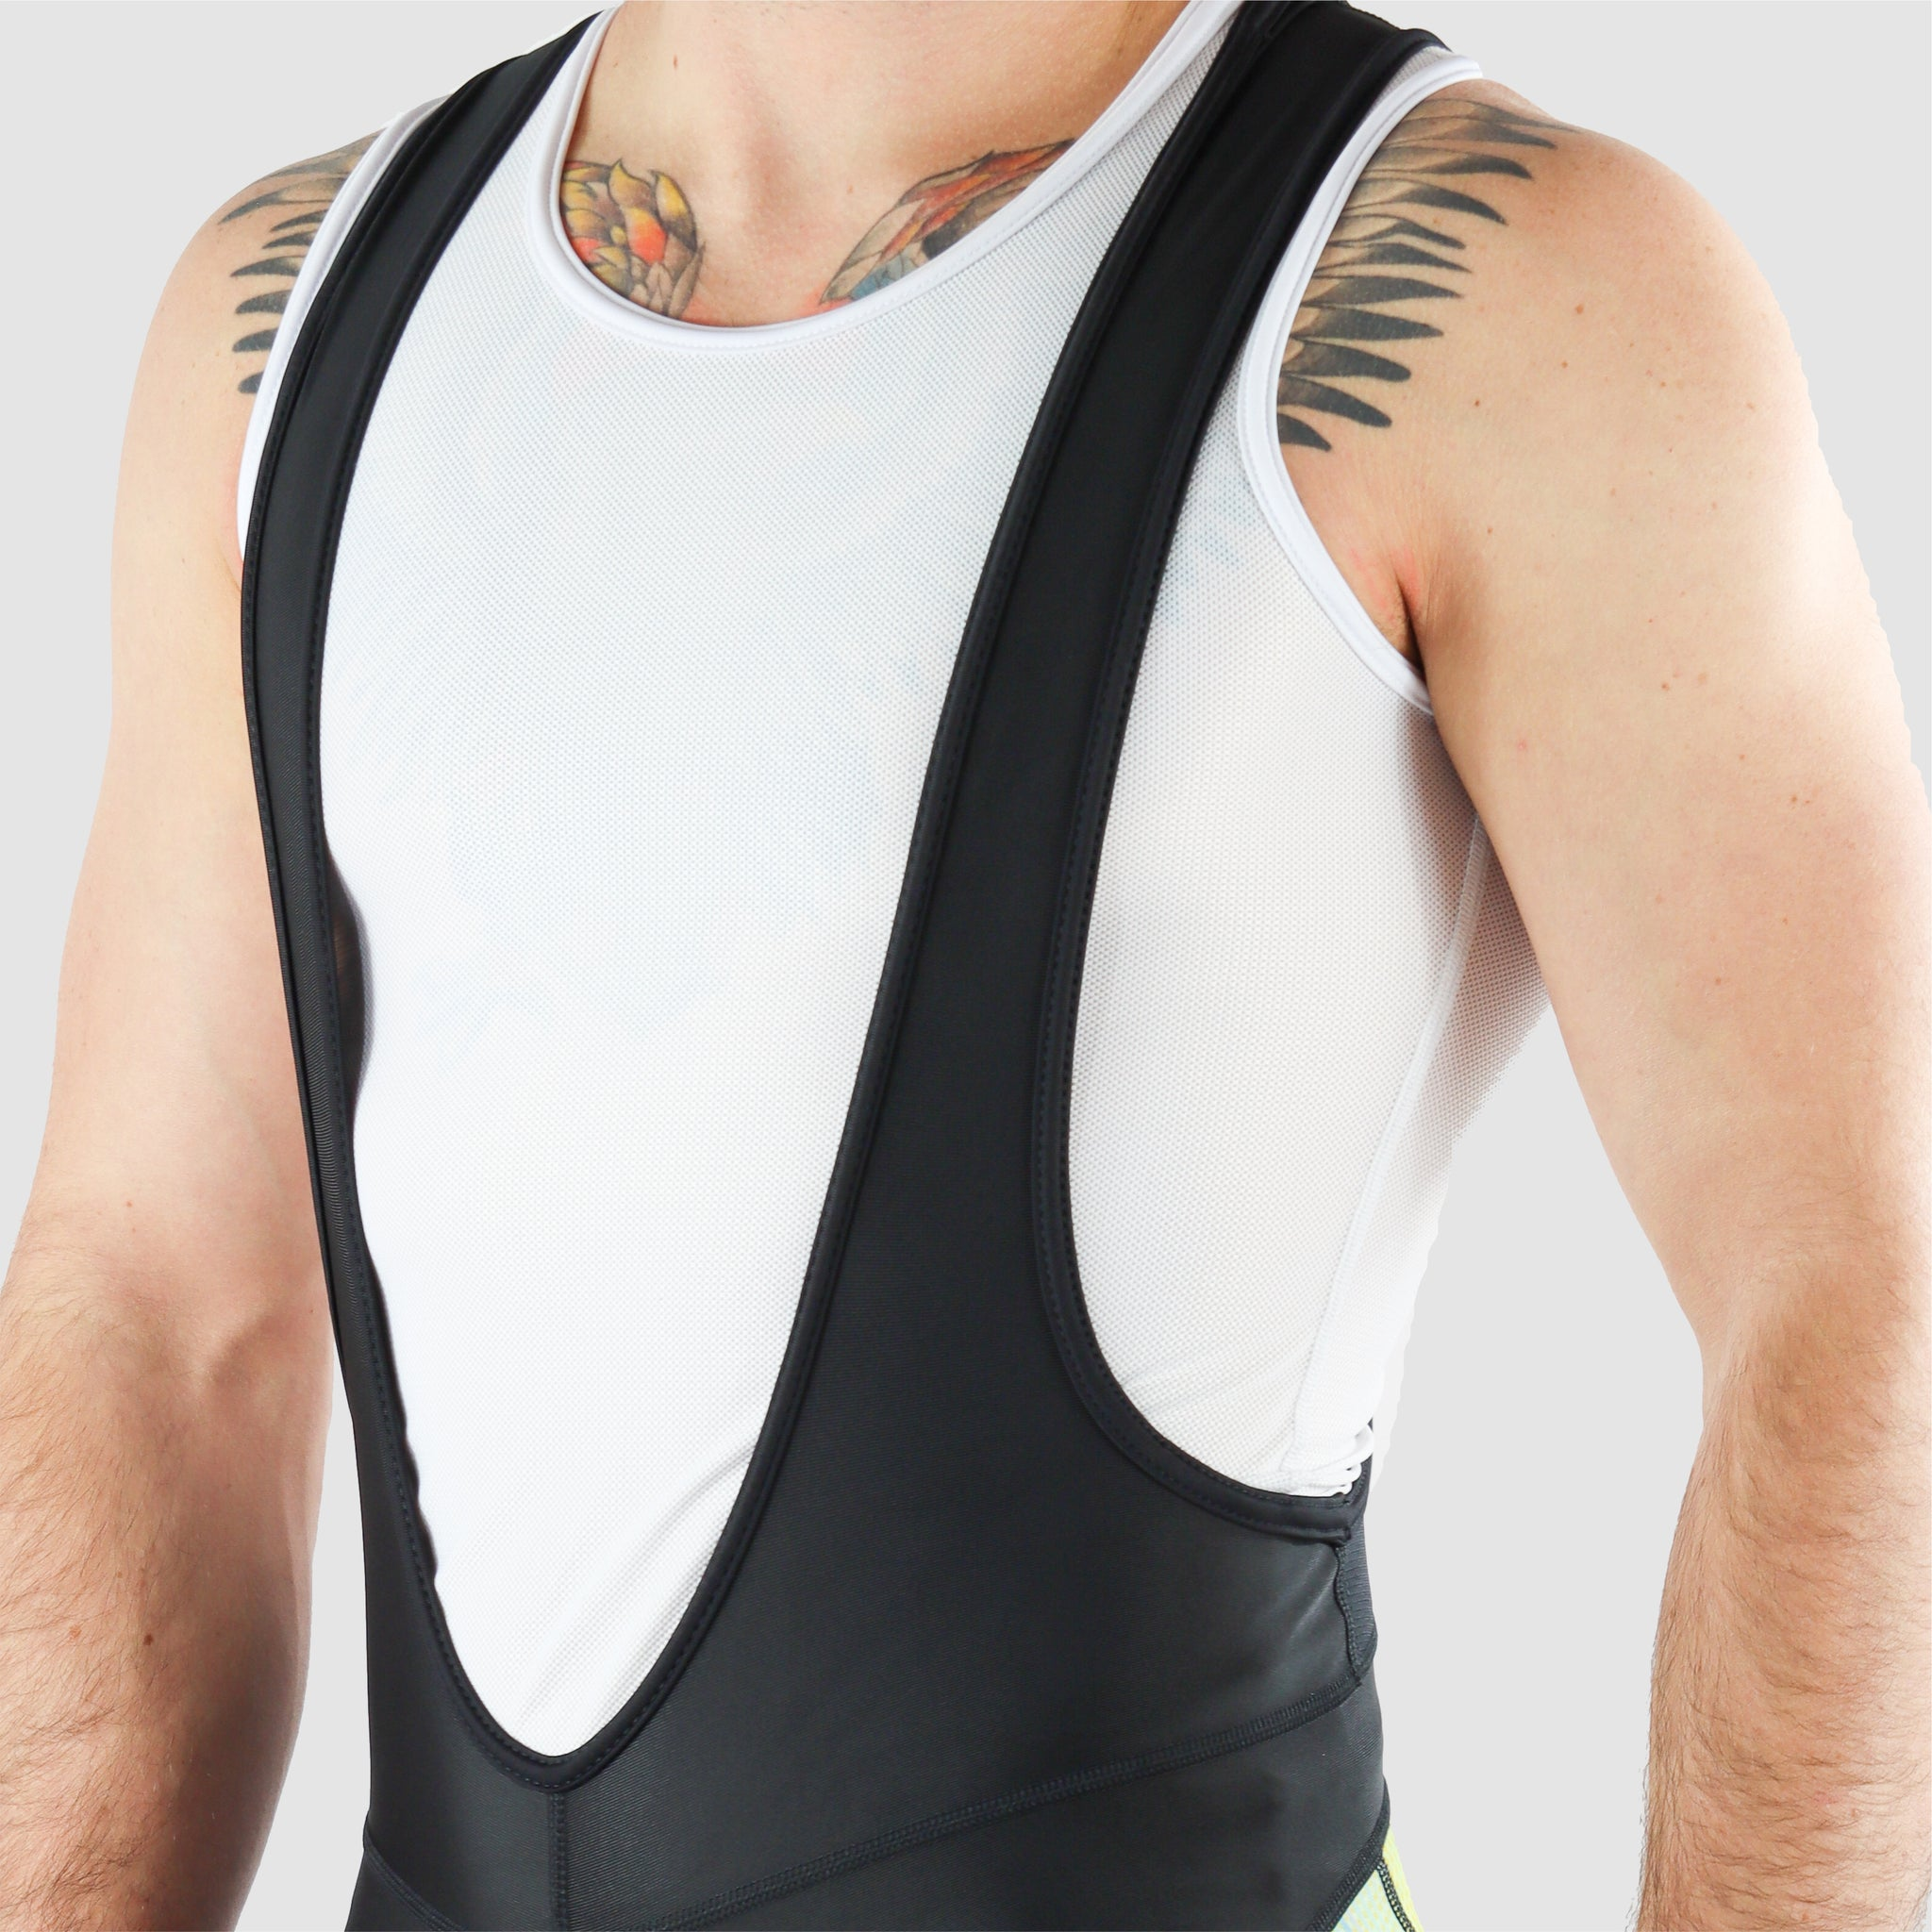 DiDOO Men's Classic Quick Dry Padded Cycling Bib Shorts Black and Yellow